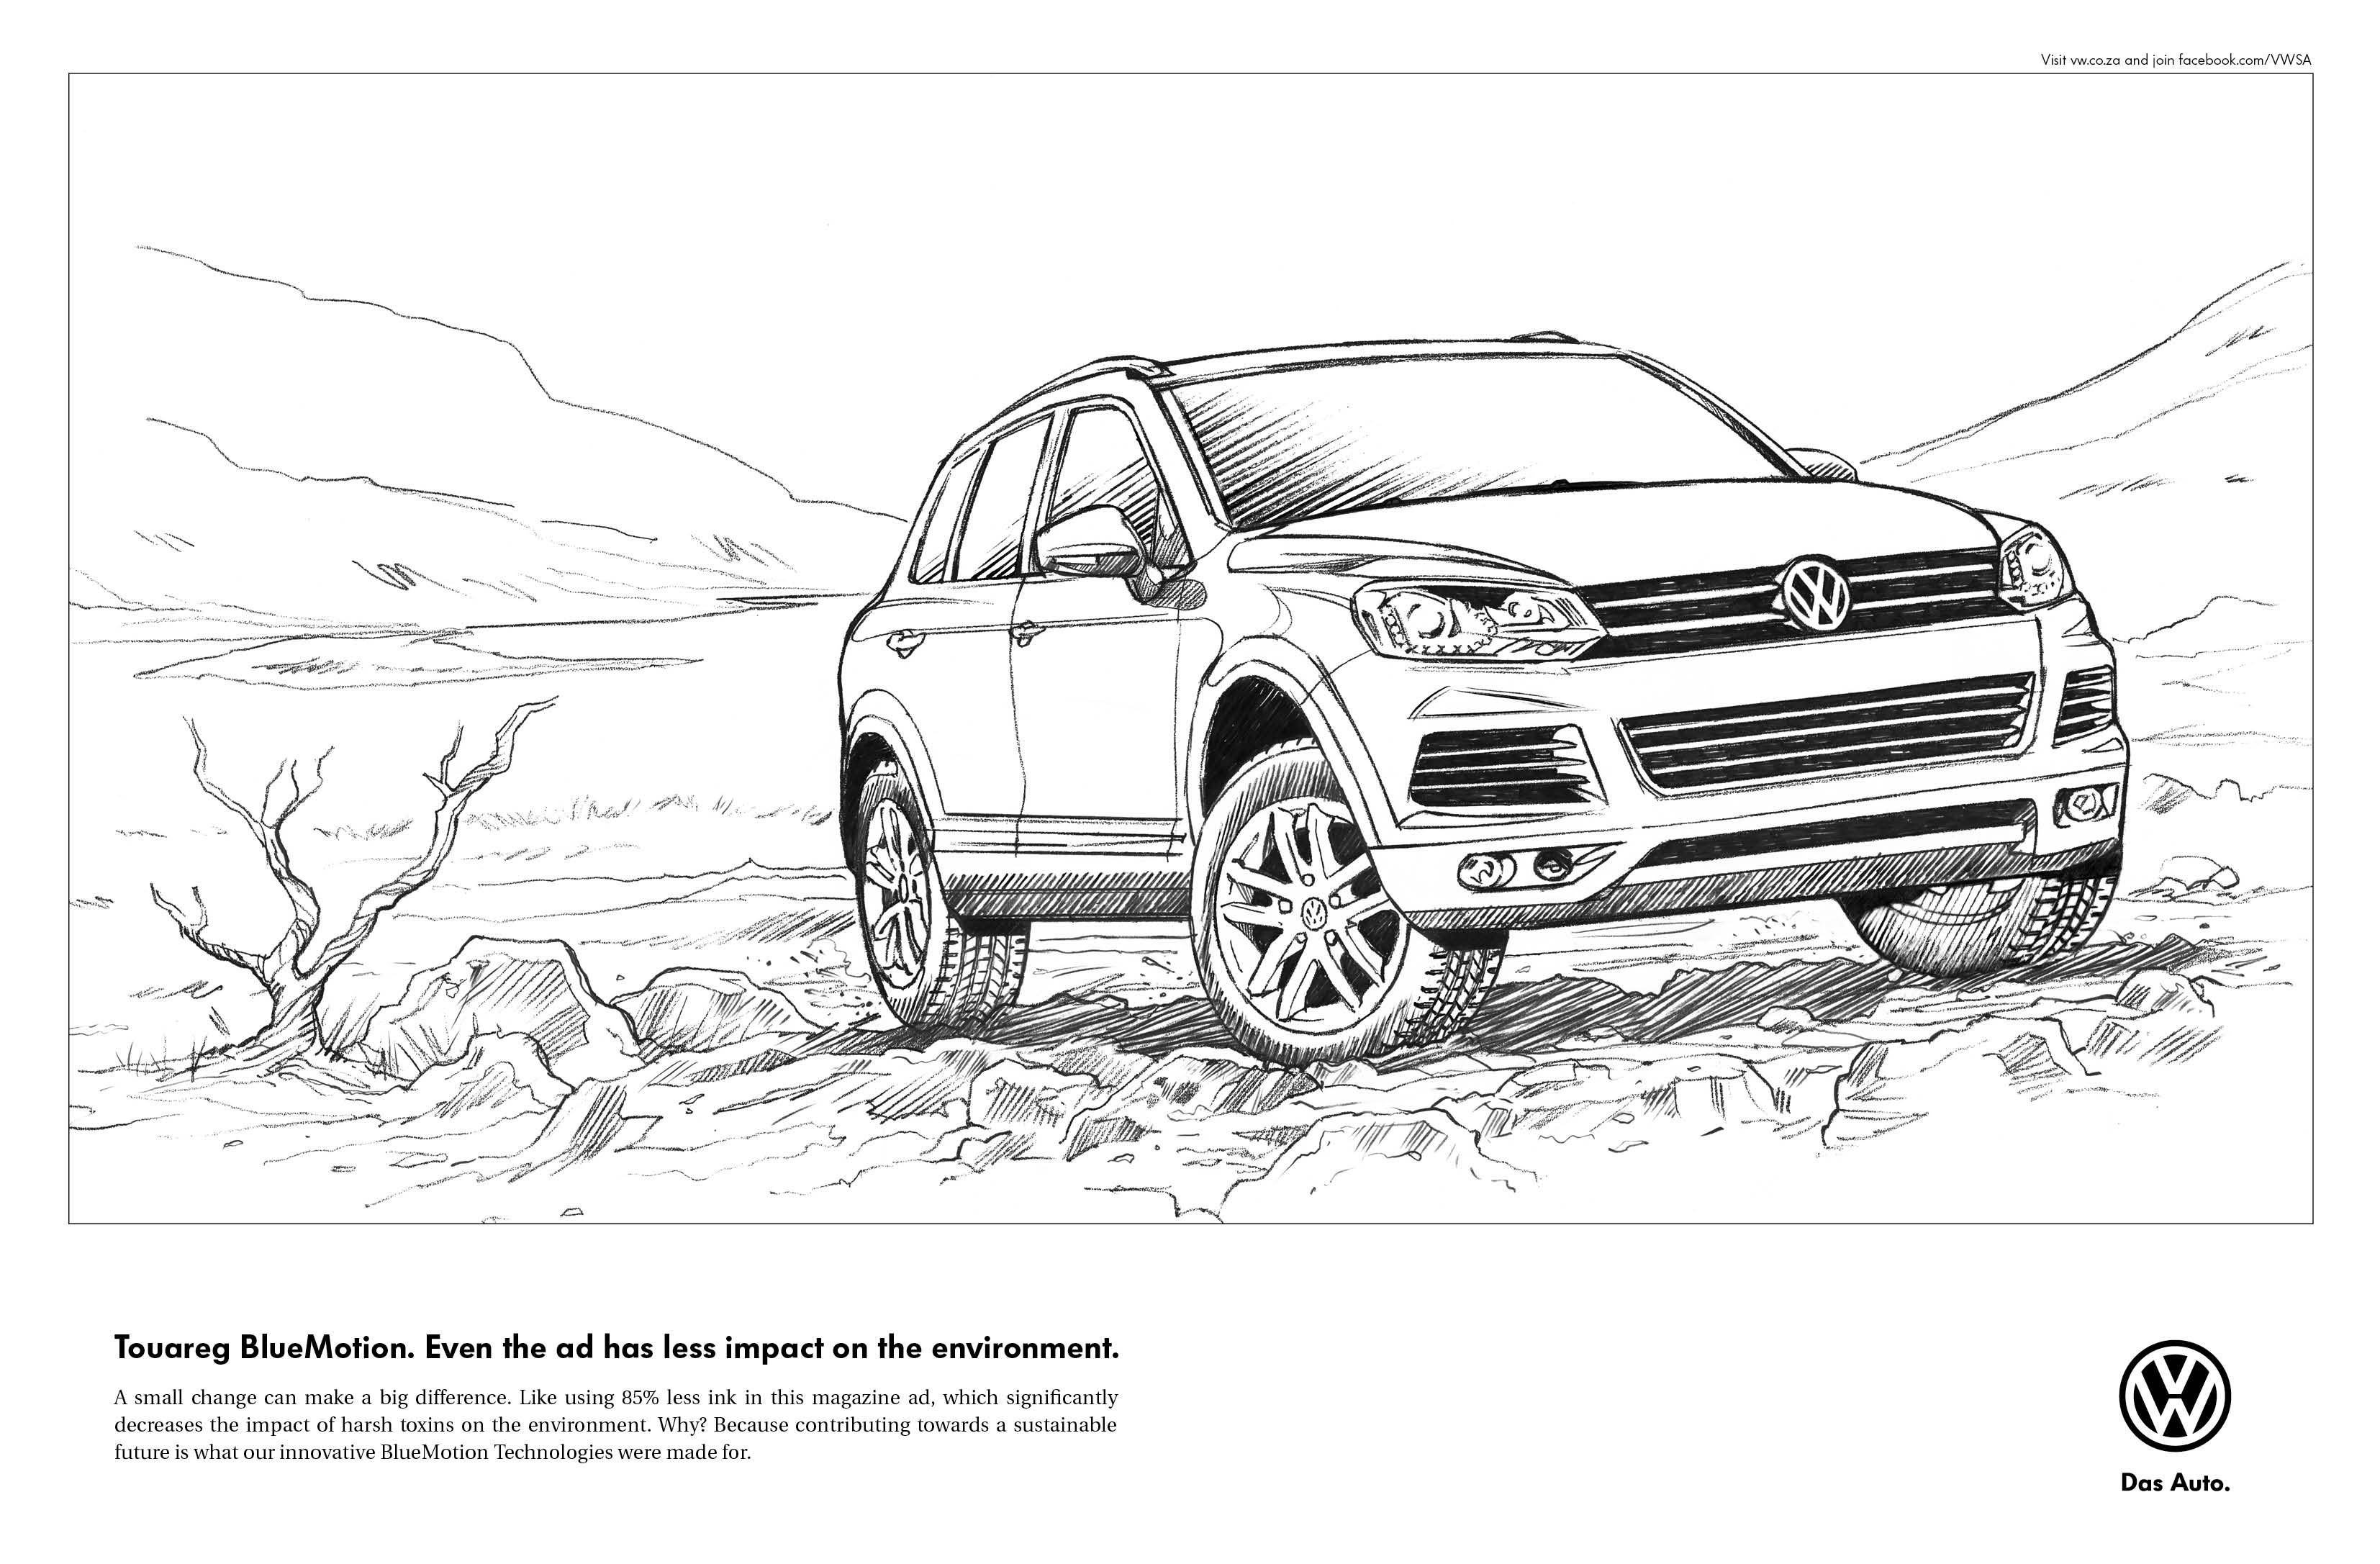 Volkswagen Touareg Bluemotion Line Drawing Cool Car Drawings Fuse Box